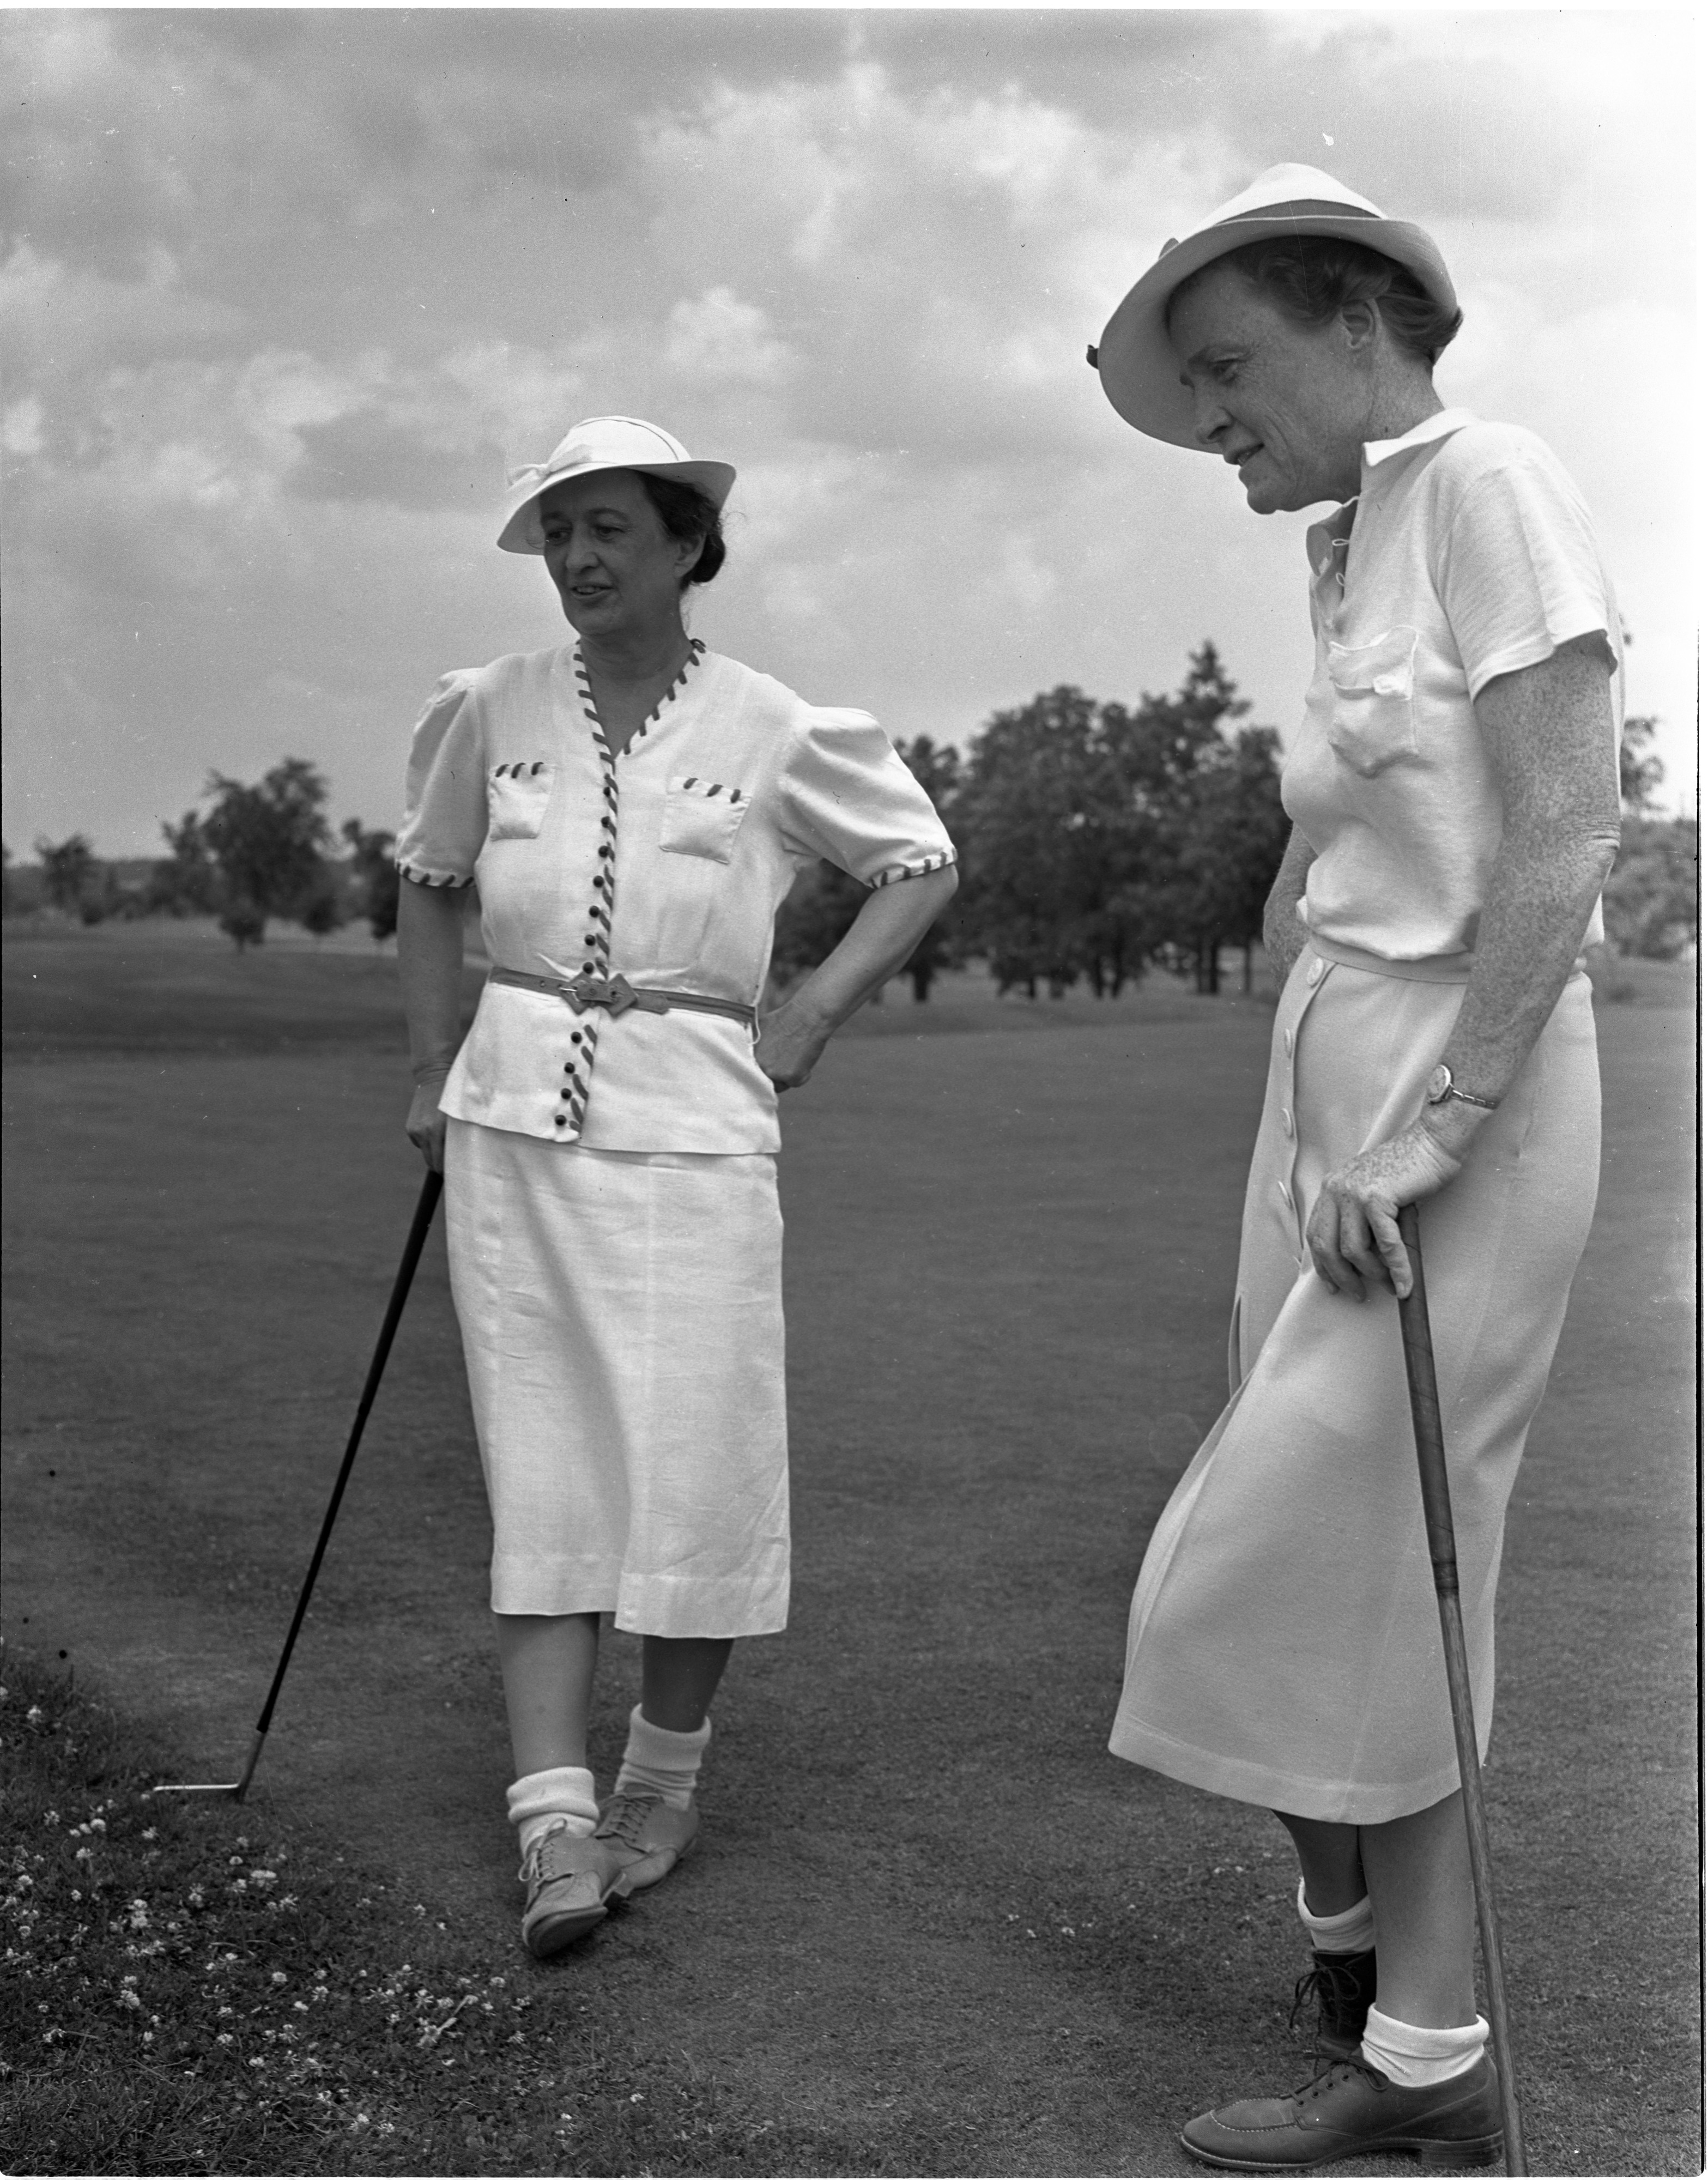 Dr. Margaret Bell In The Women's City Golf Tournament Qualifying Rounds At Barton Hills, July 1939 image